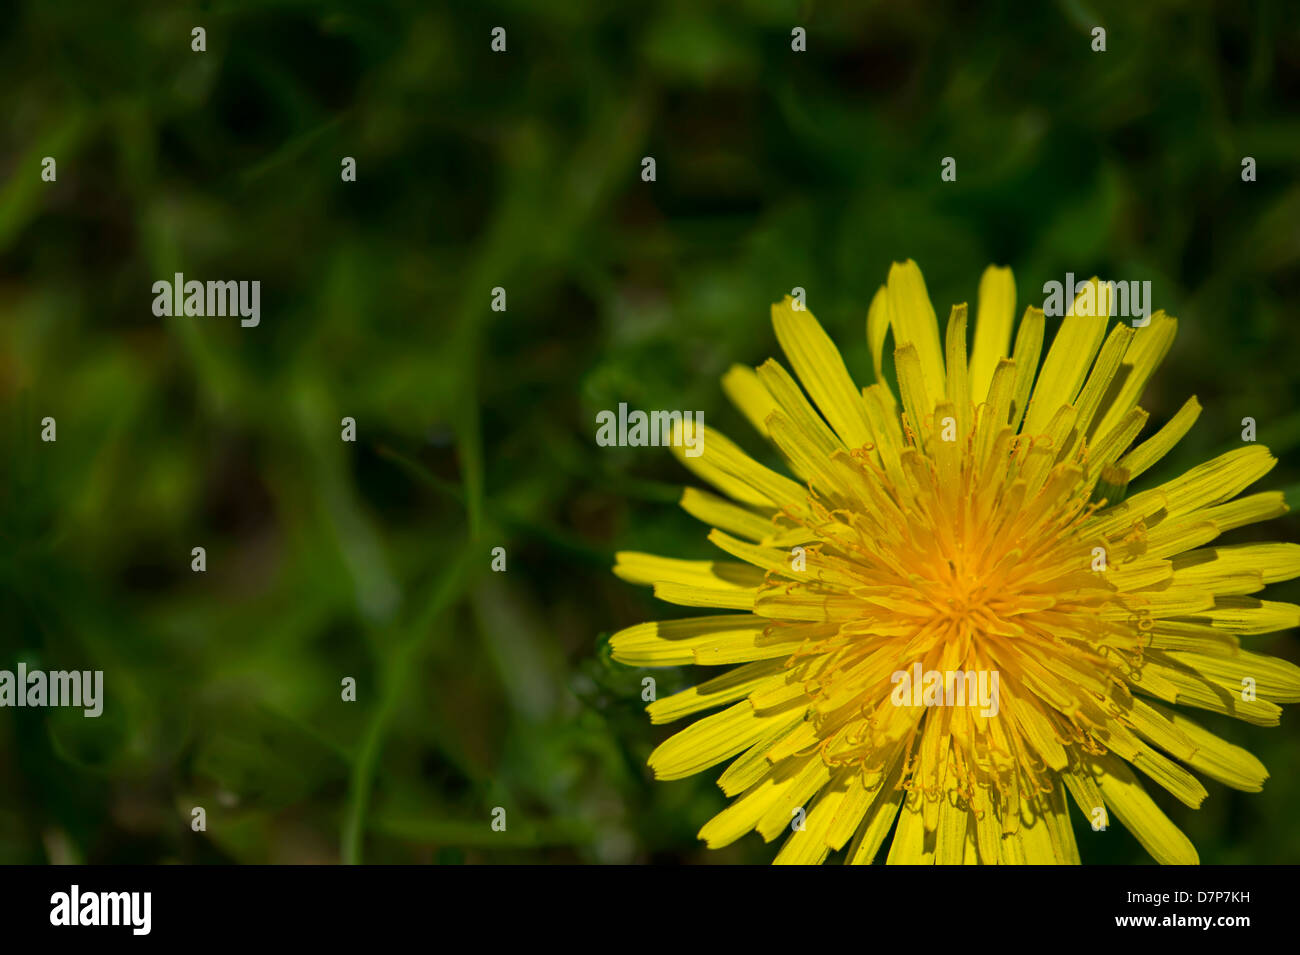 Yellow Dandelion Flower - Stock Image